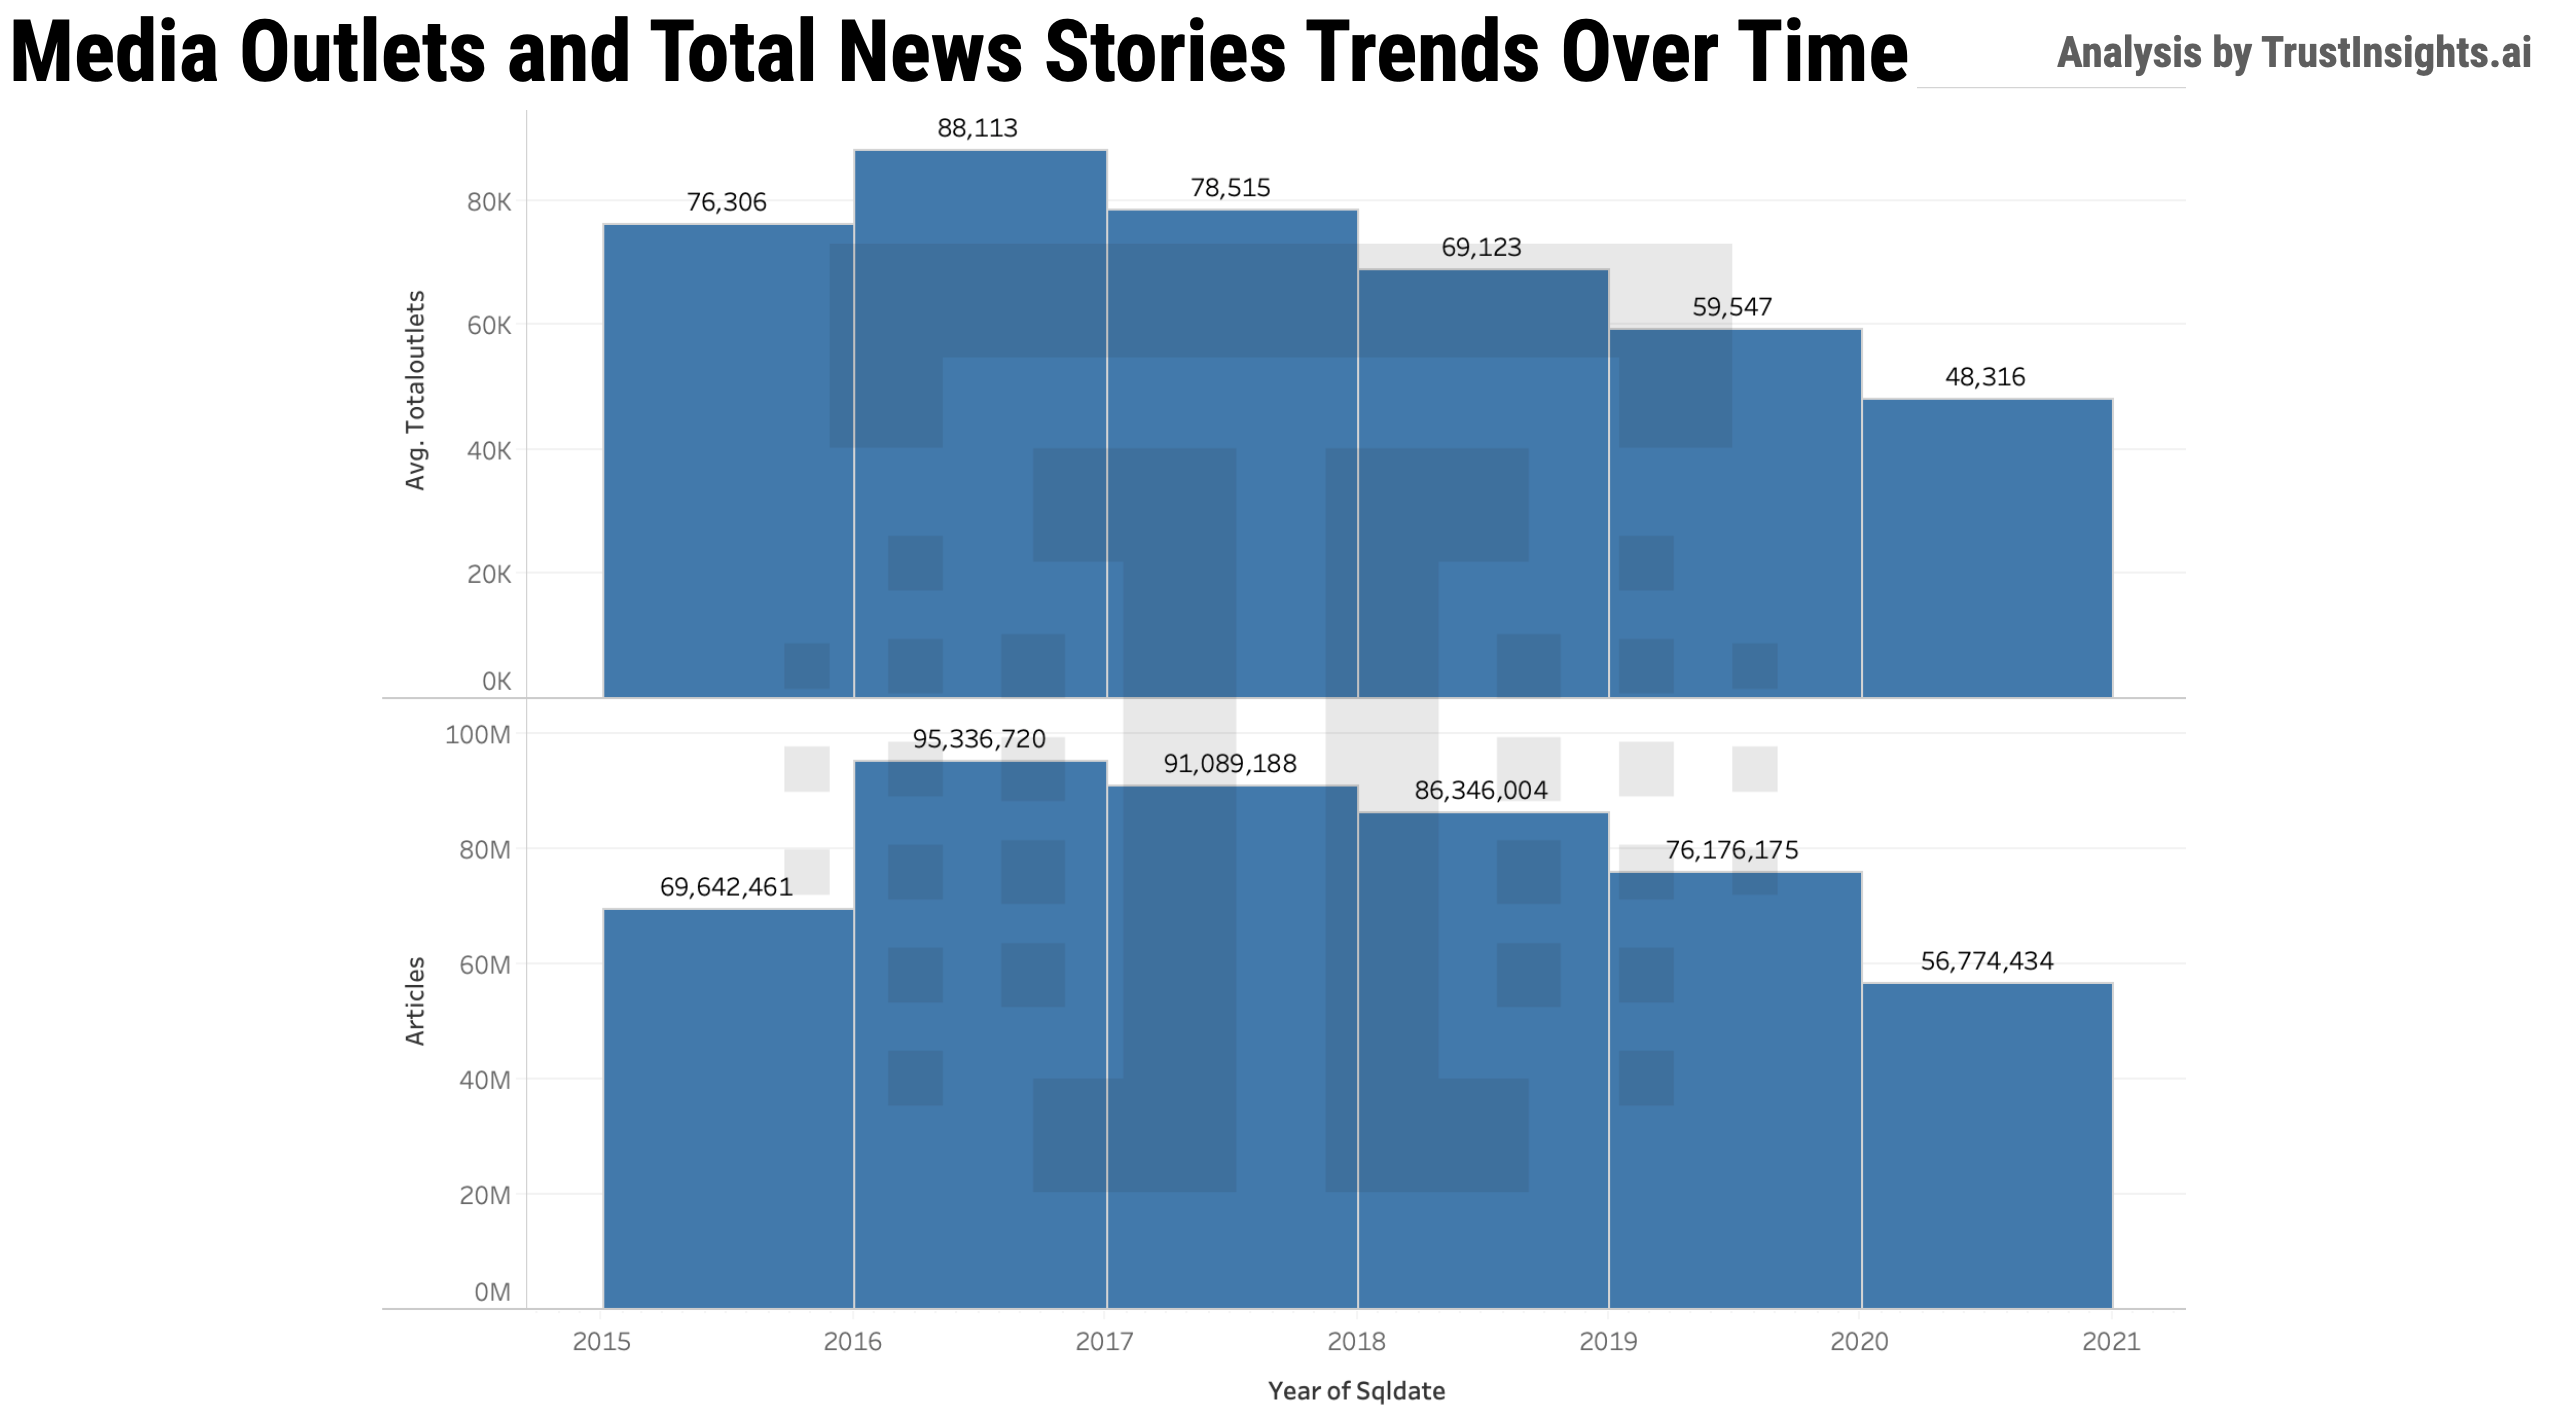 Media Outlets and Stories over Time